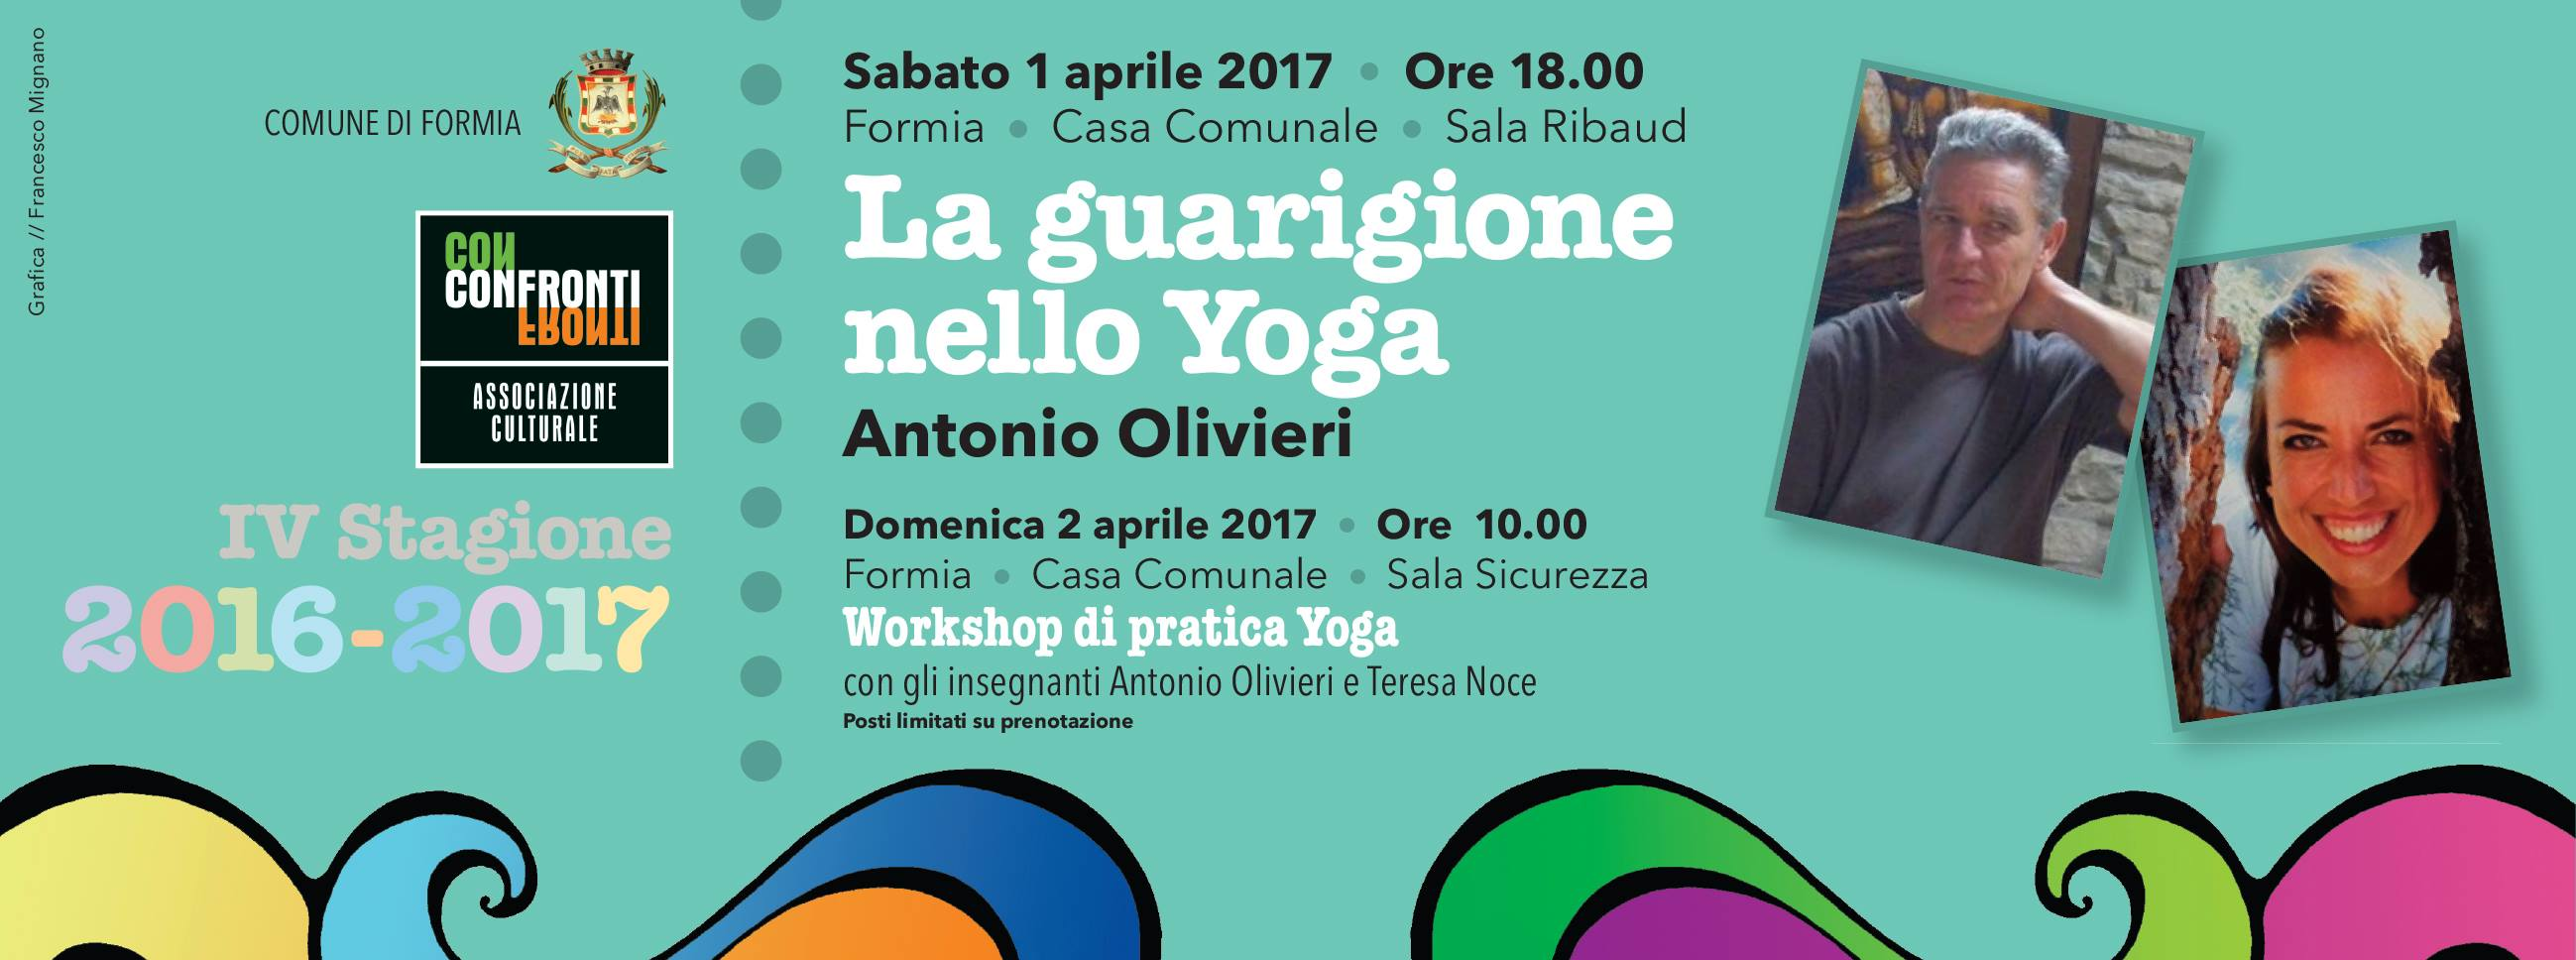 La Guarigione nello Yoga